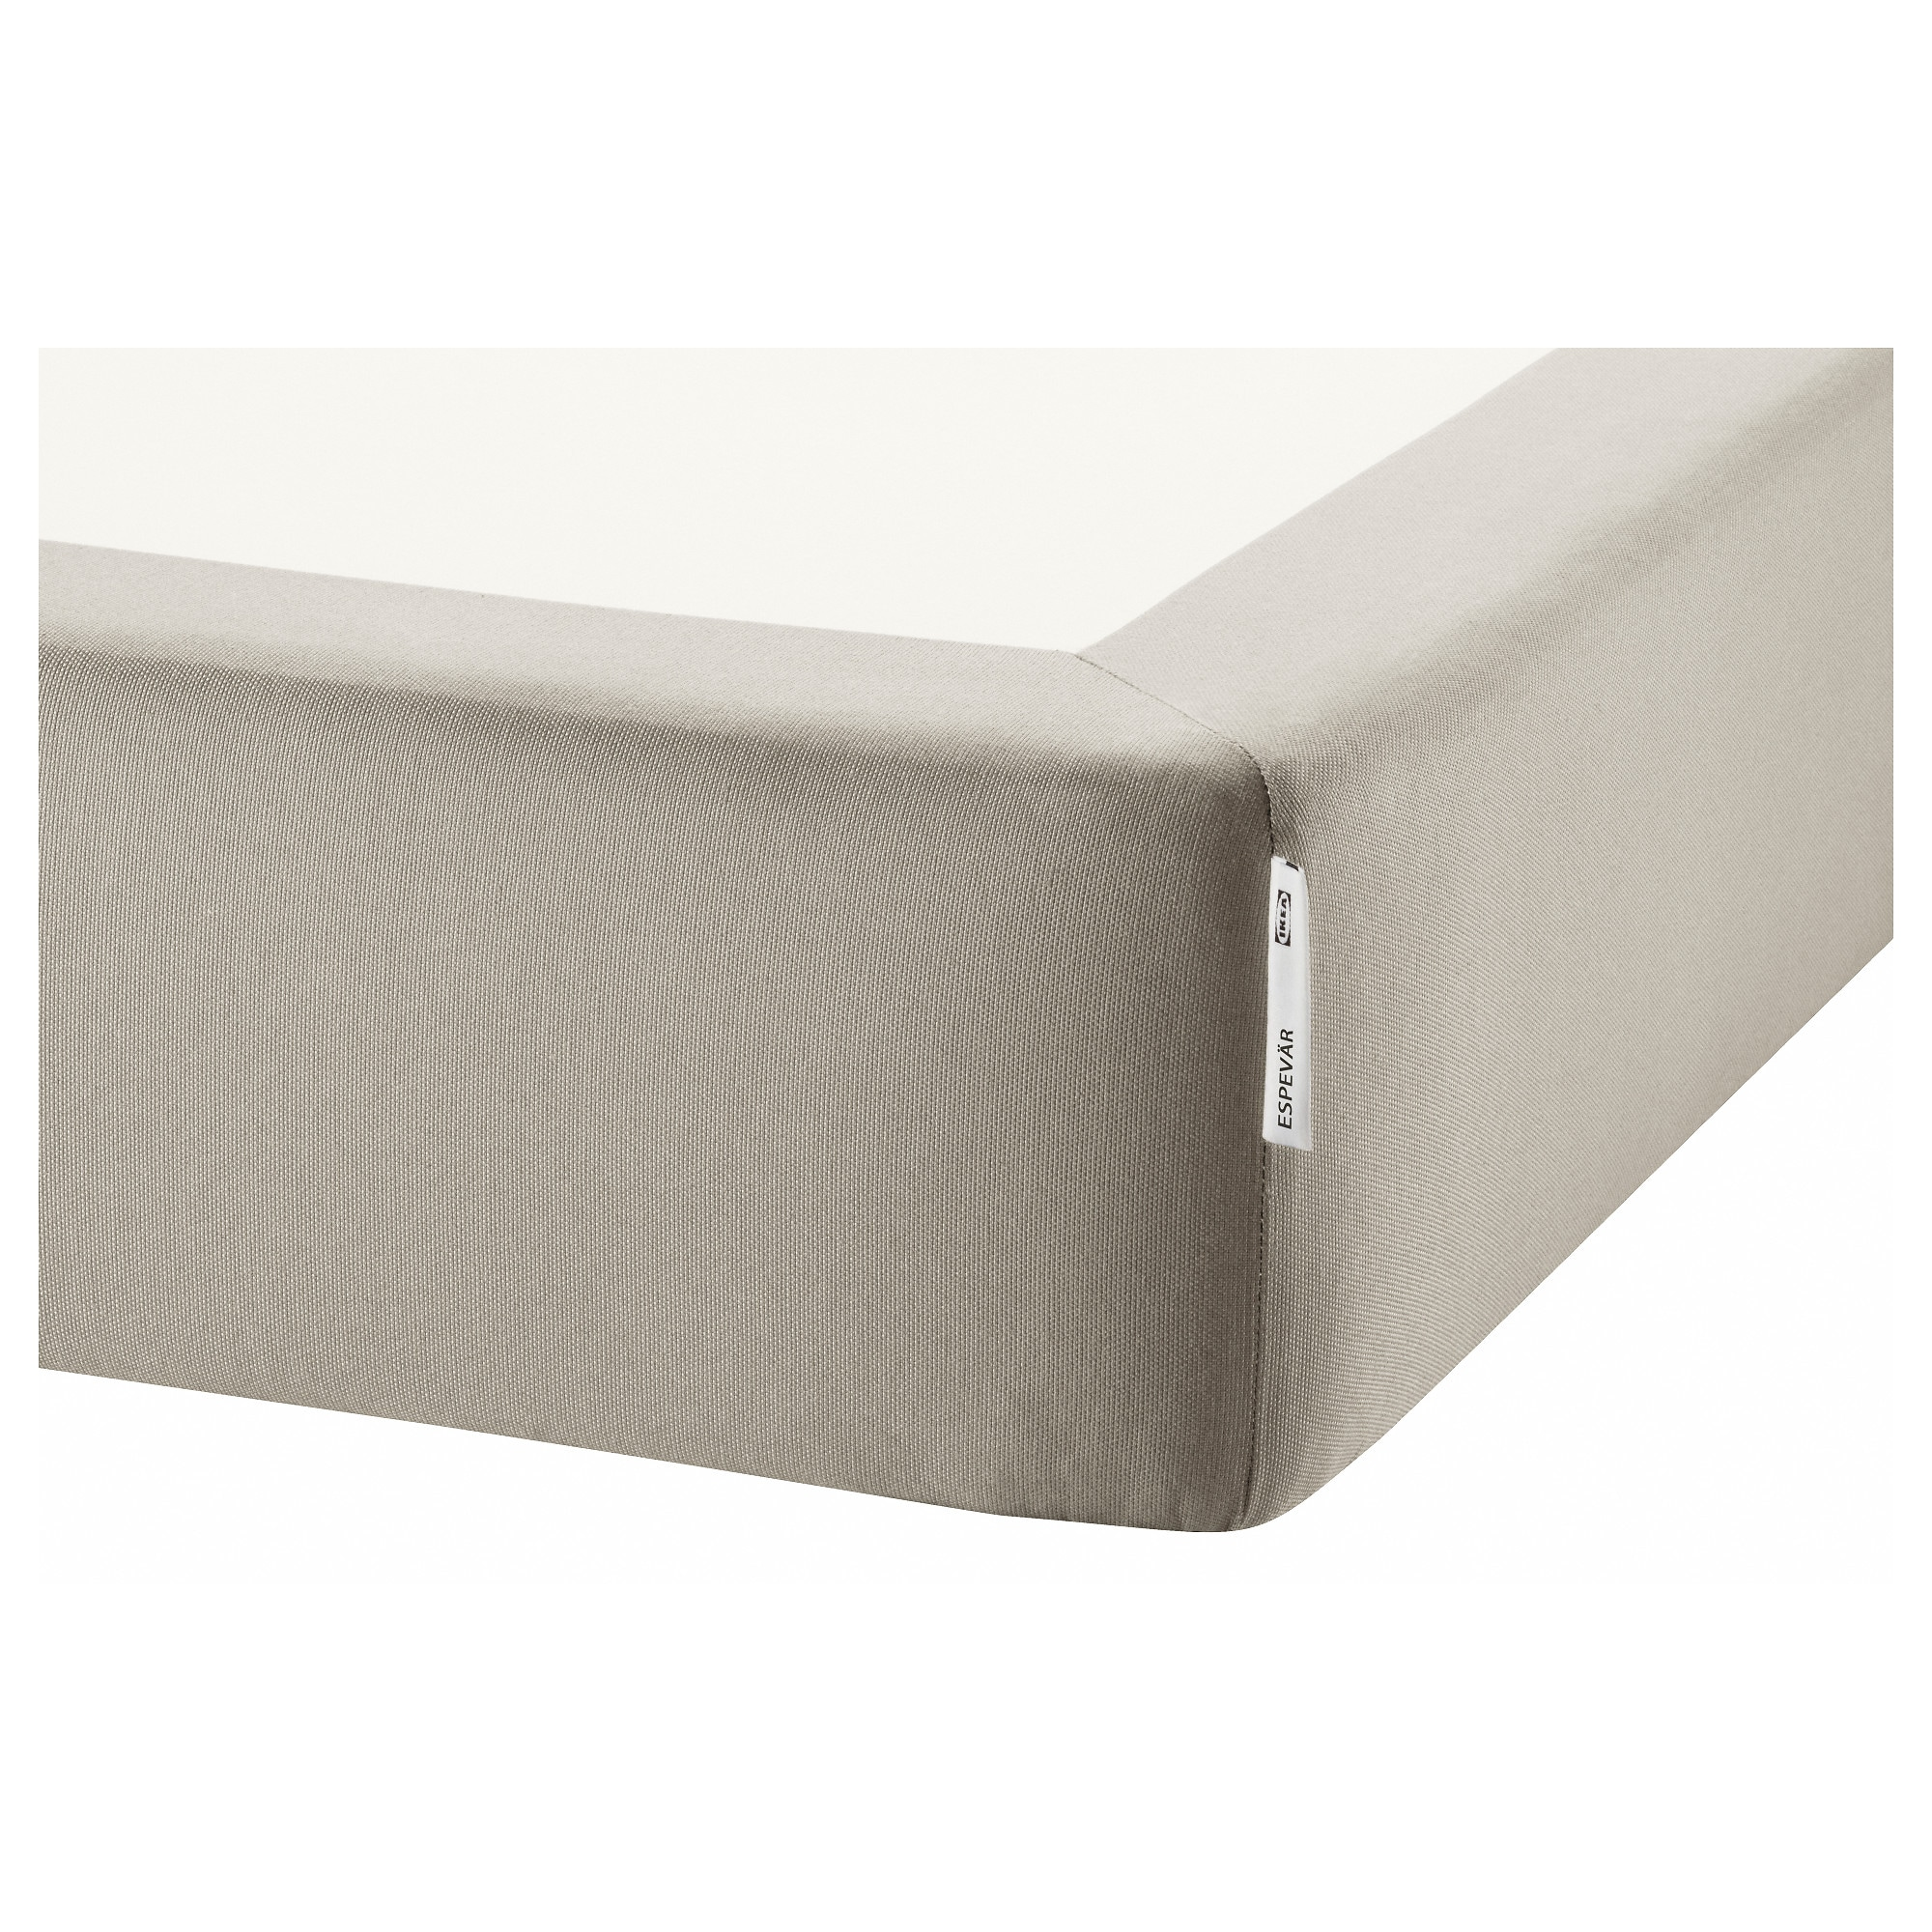 "ESPEV""R Slatted mattress base for bed frame Queen IKEA"